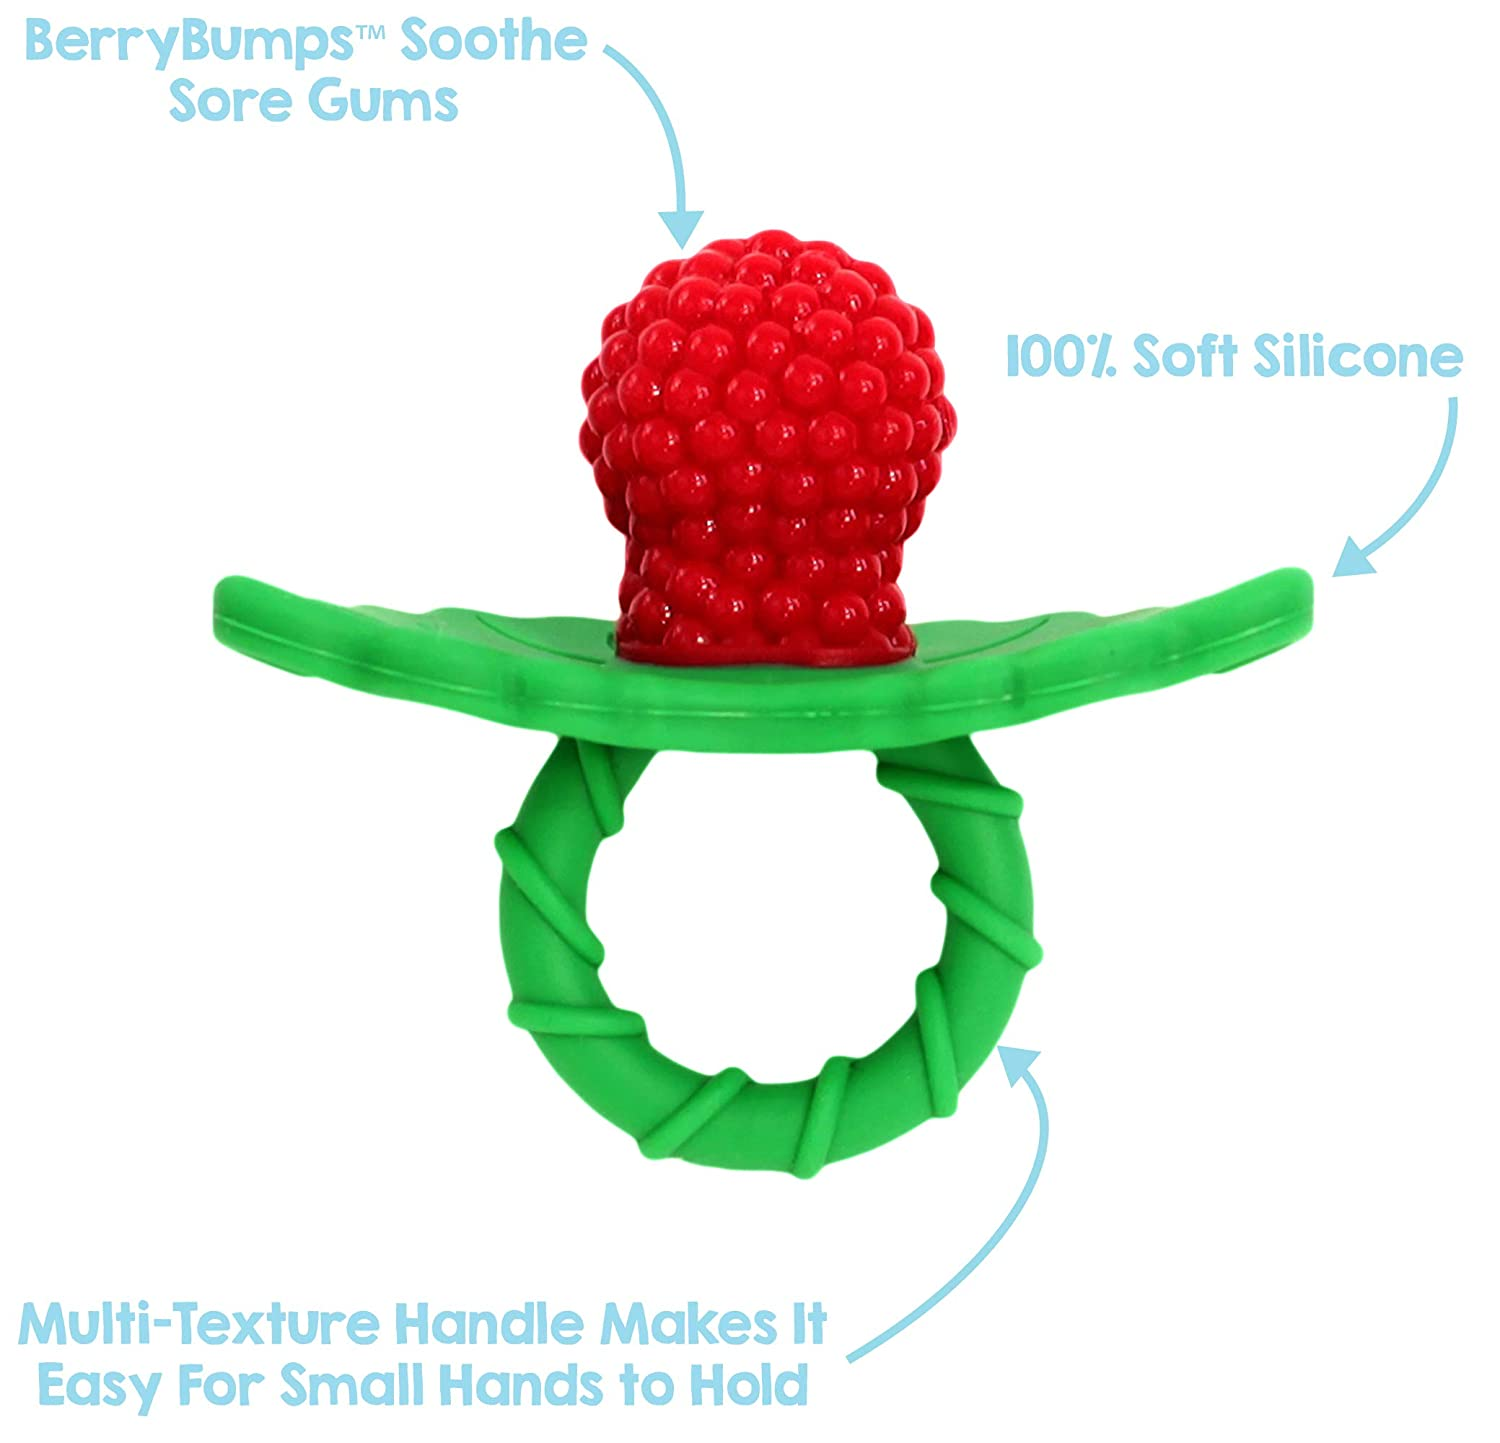 RaZbaby RaZberry Silicone Baby Teether Toy - Berrybumps Soothe Babies Sore Gums - Infant Teething Toy - Hands Free Design - BPA Free - Easy-to-Hold Design - Teething Relief Pacifier - Fruit Shape/Red : Baby Teether Toys : Baby